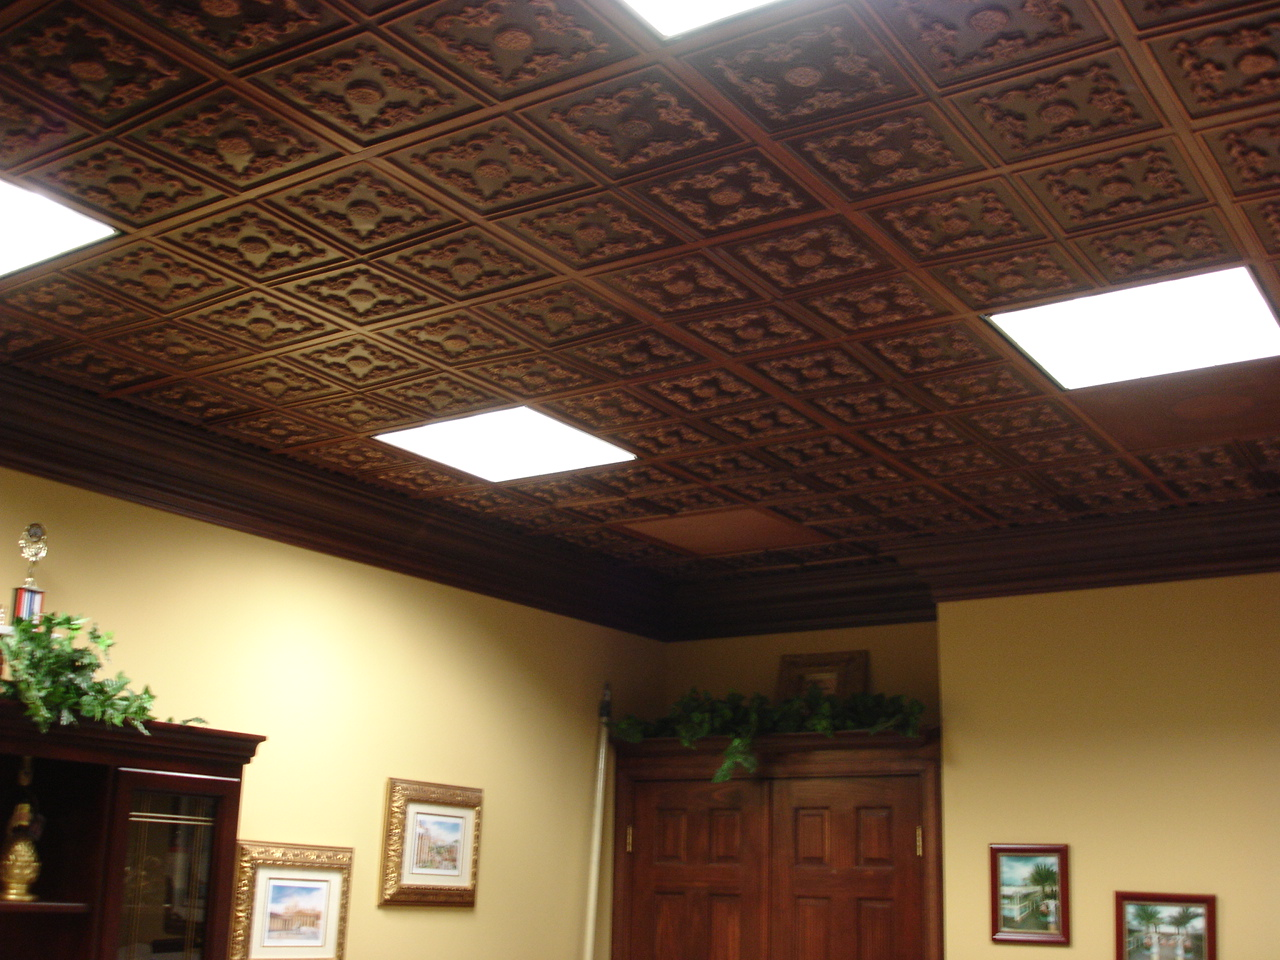 decorated-drop-ceiling-tiles-with-faux-tin-antique-copper-ones.jpg